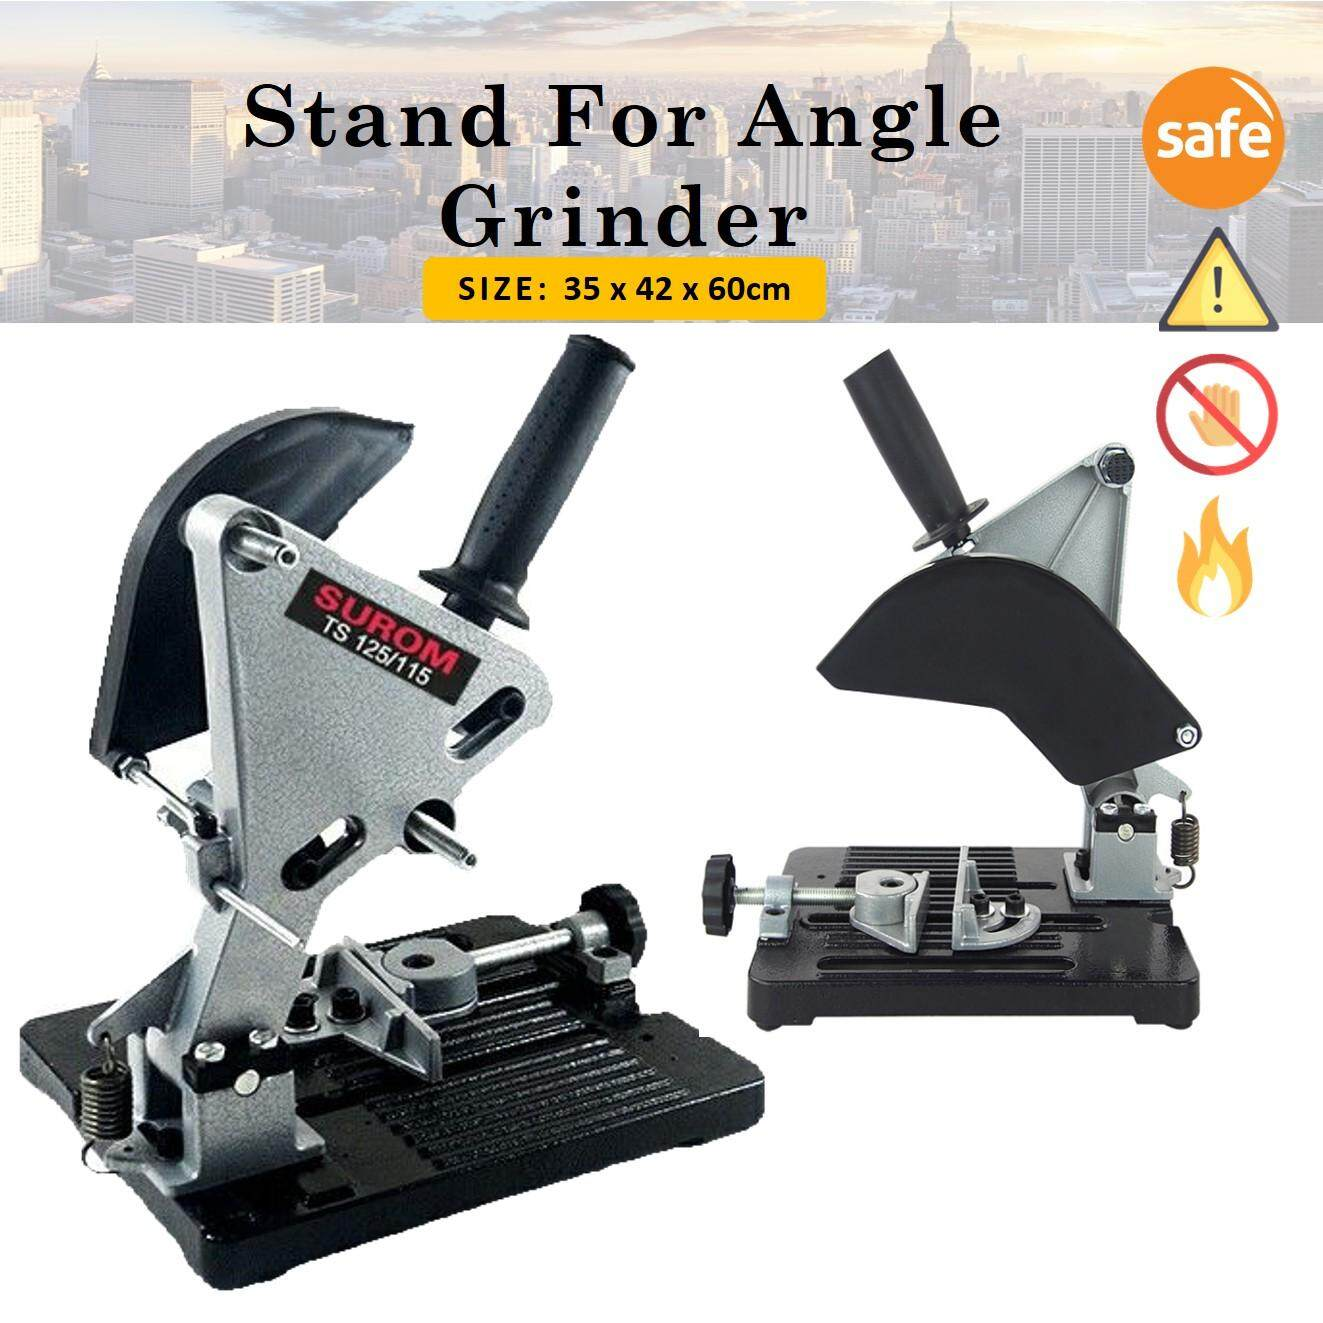 Universal Cutting Holder Angle Grinder Stand Bosch Stanley Support Cast Iron Case Base Frame